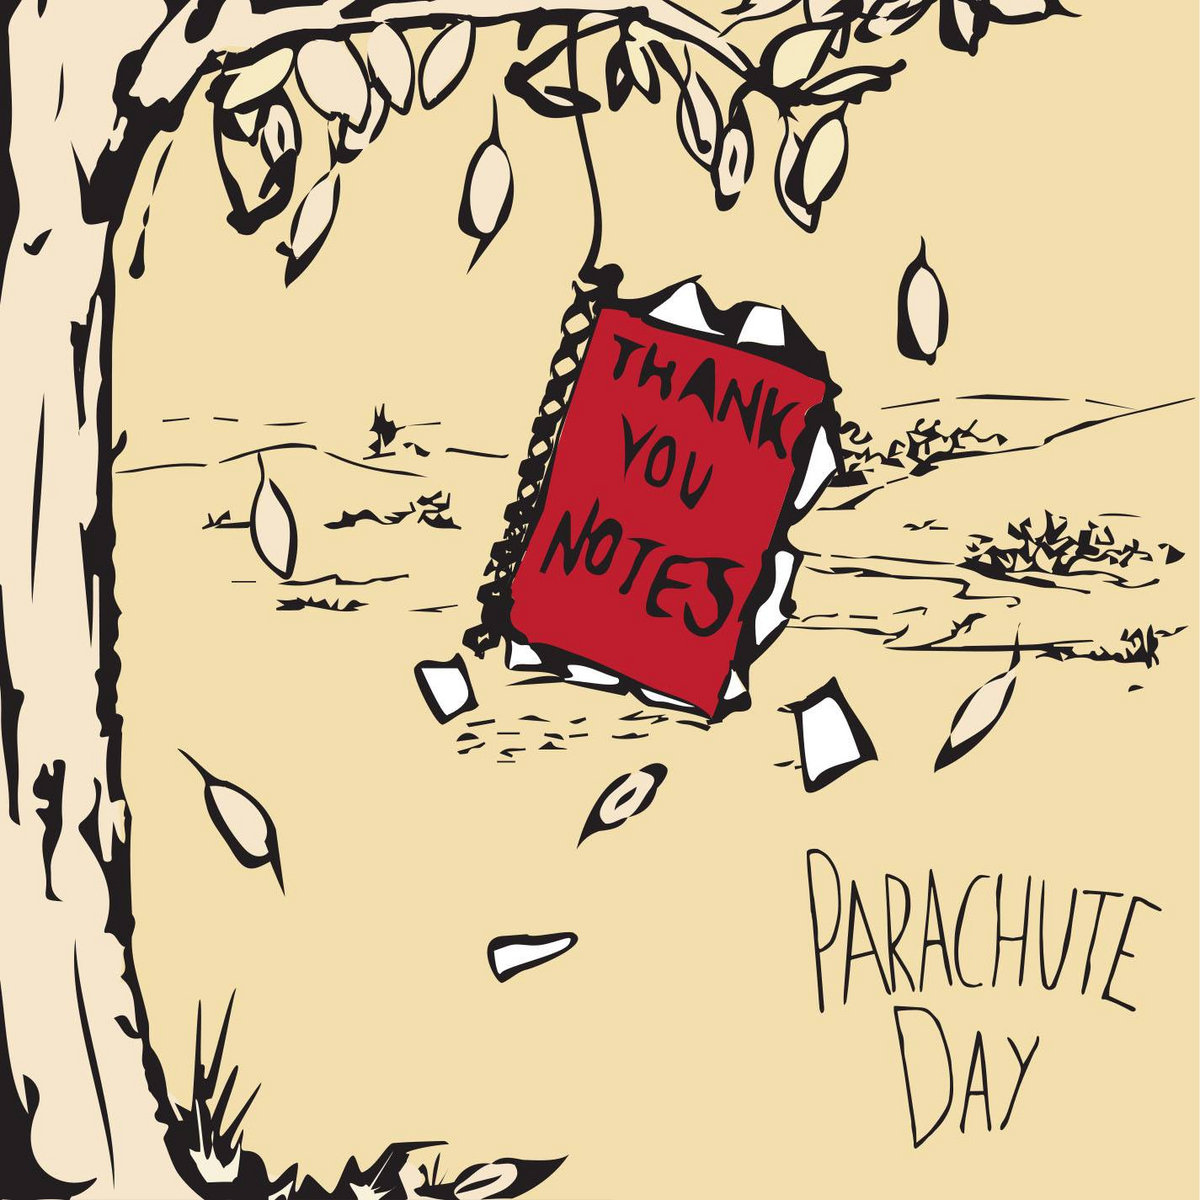 Thank you notes parachute day thank you notes altavistaventures Image collections